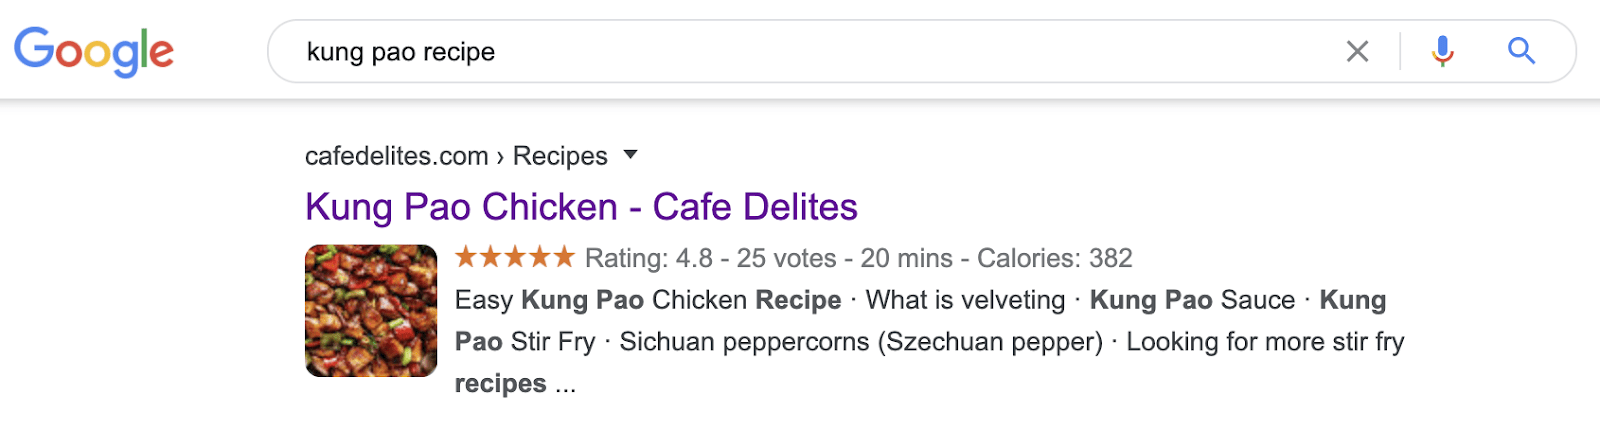 16 kung pao rich snippets